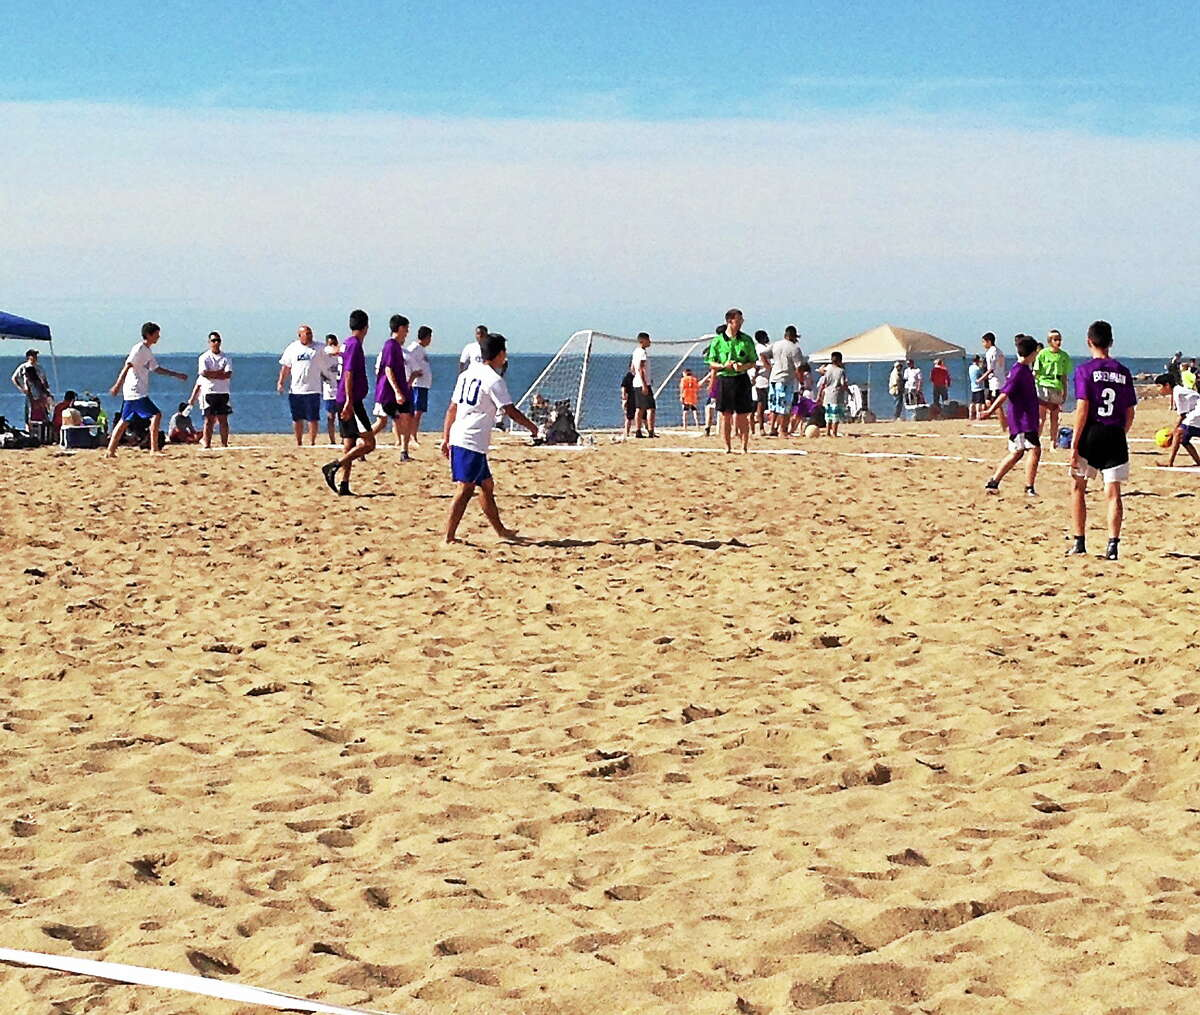 Youth soccer teams play at the 2014 Soccer Resort New England Beach Blitz on West Haven Beach. Teams play for 30 minutes on a 30-by-40 yard field.